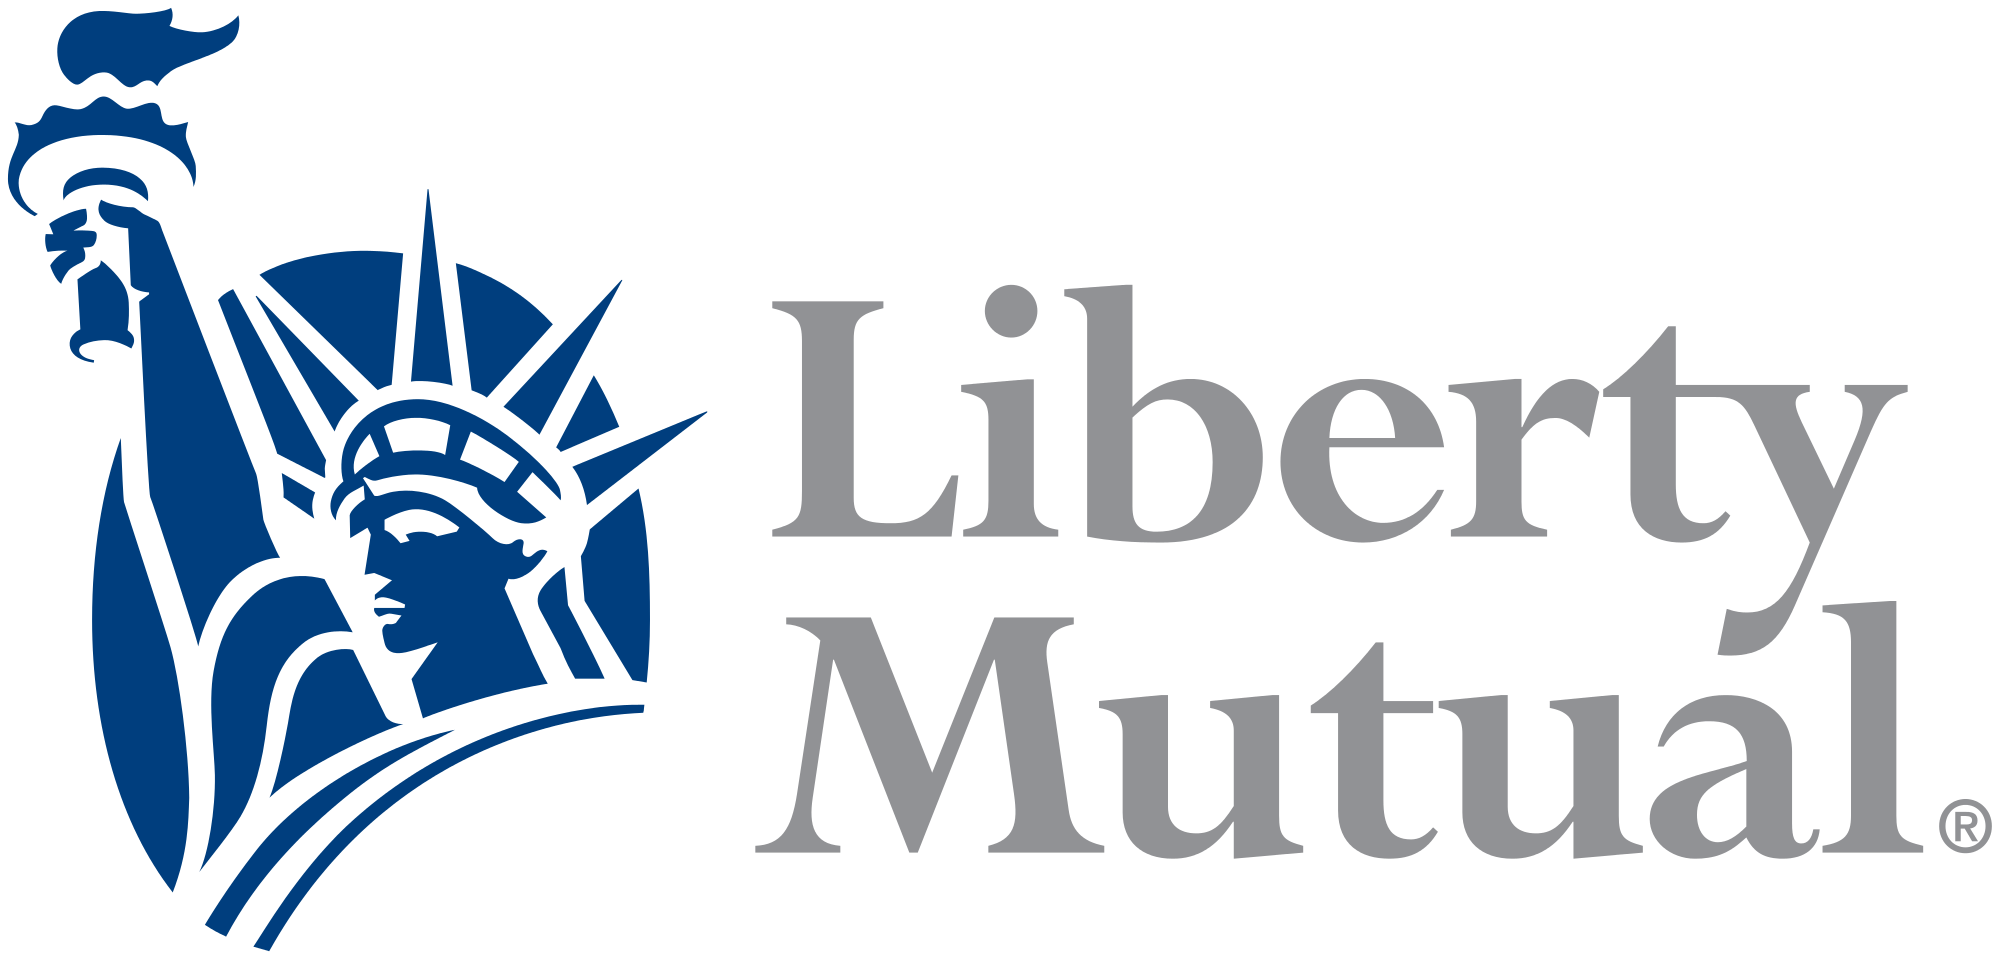 Liberty Mutual Quote Impressive Liberty Mutual Insurance Logos  Google Search  Insurance . Review